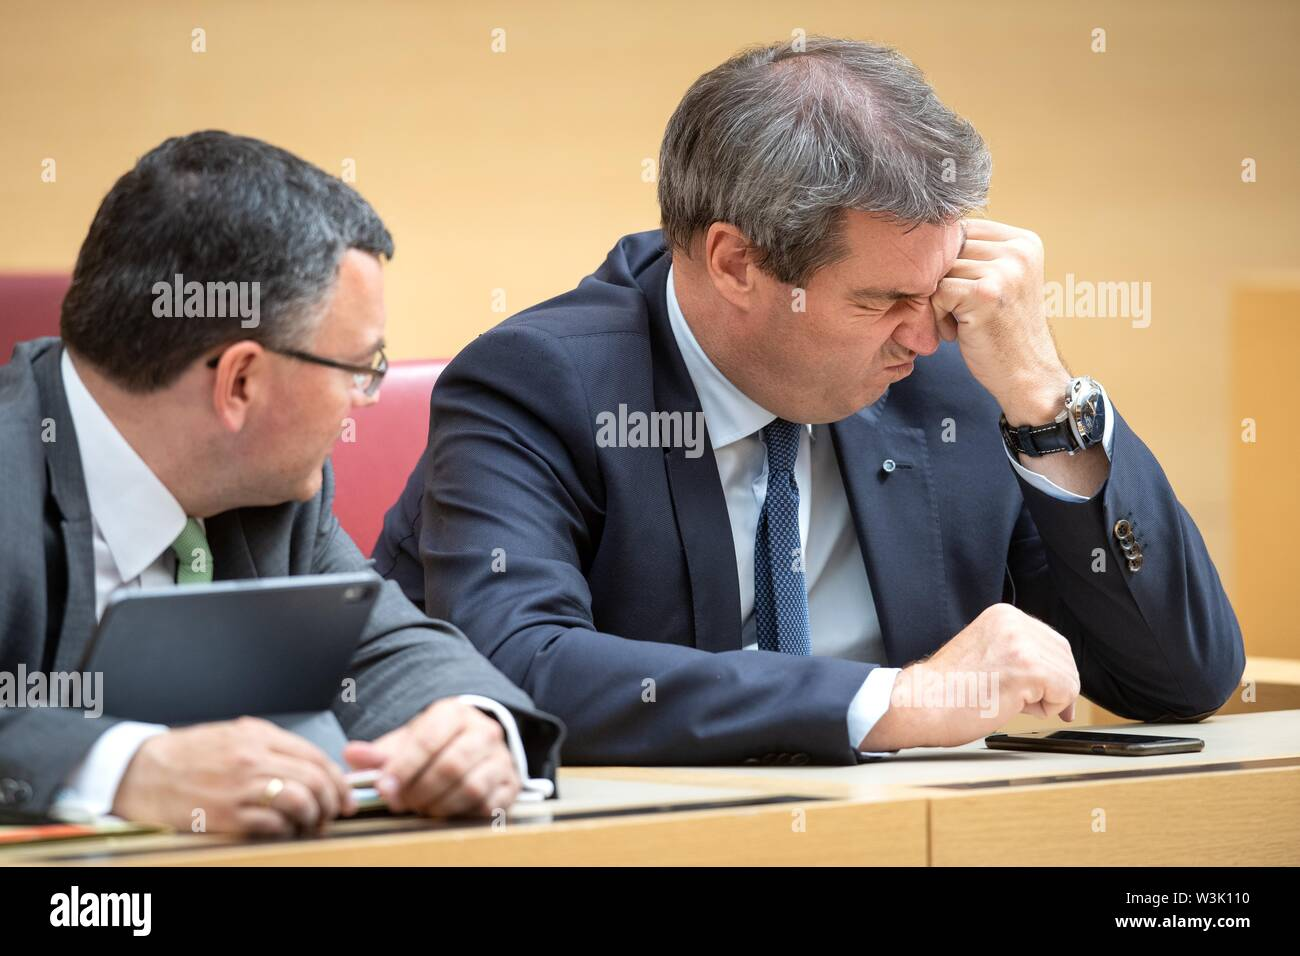 Munich, Germany. 16th July, 2019. Markus Söder (CSU, r), Prime Minister of Bavaria, and Florian Herrmann (CSU), Head of the State Chancellery and Minister of State for Federal Affairs, will take part in the plenary session of the Landtag. Topics include land consumption in Bavaria and a green draft for a Bavarian climate law. Credit: Sina Schuldt/dpa/Alamy Live News - Stock Image